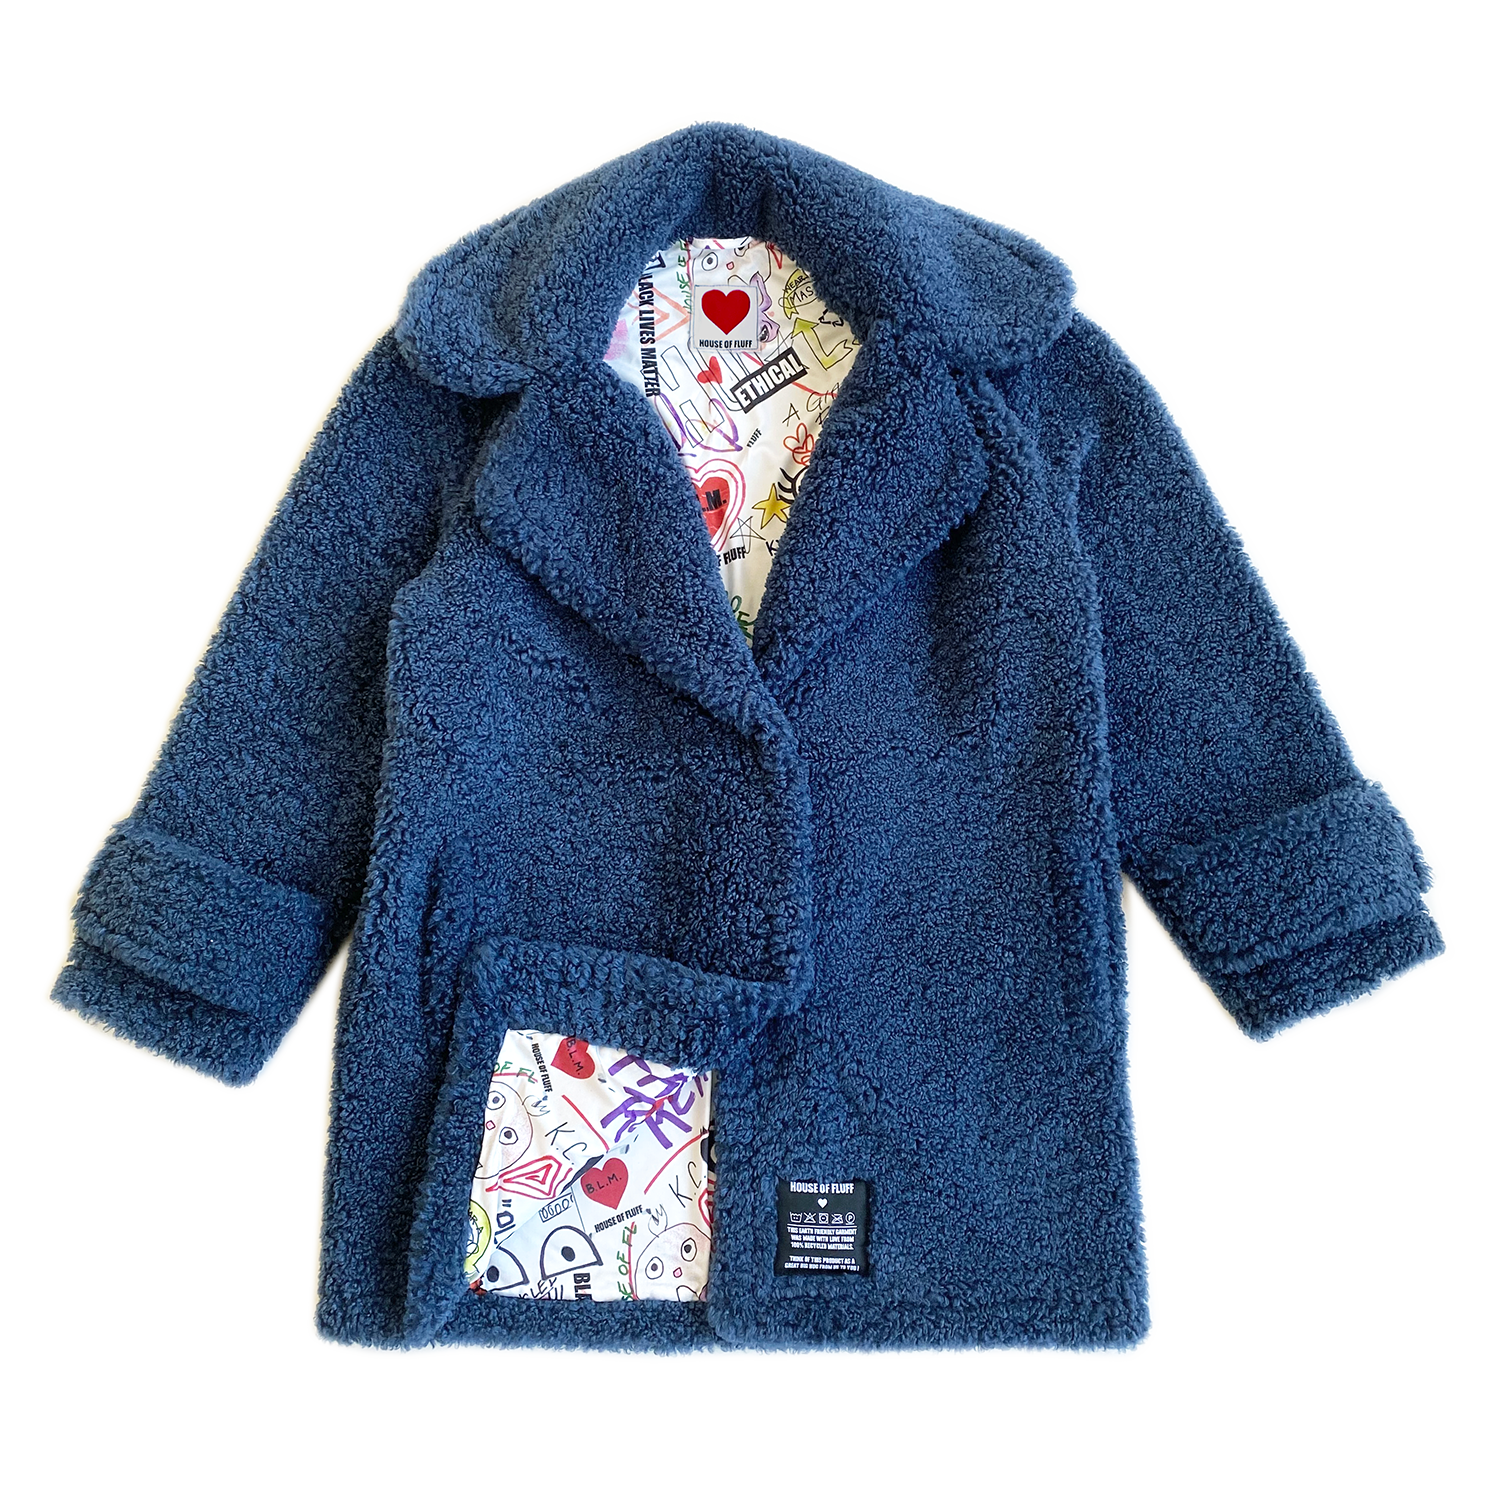 100% Recycled Shearling Oversized Peacoat - French Blue